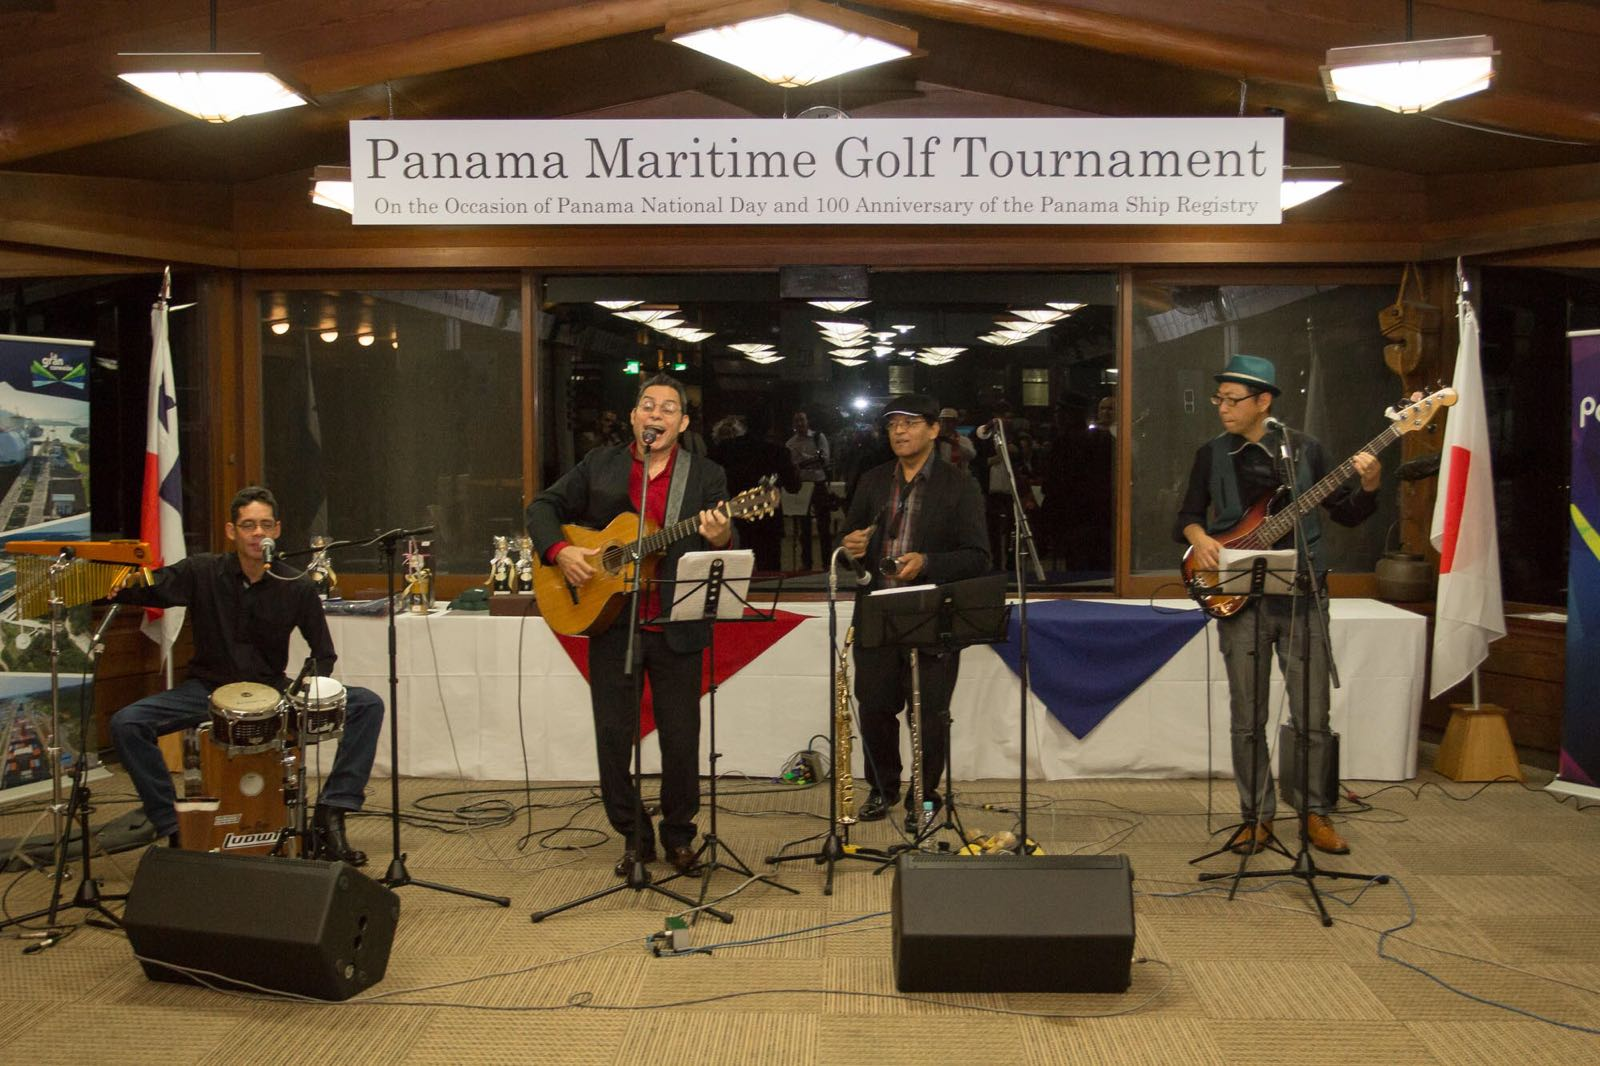 Panamanian live music performed by Latin American musicians